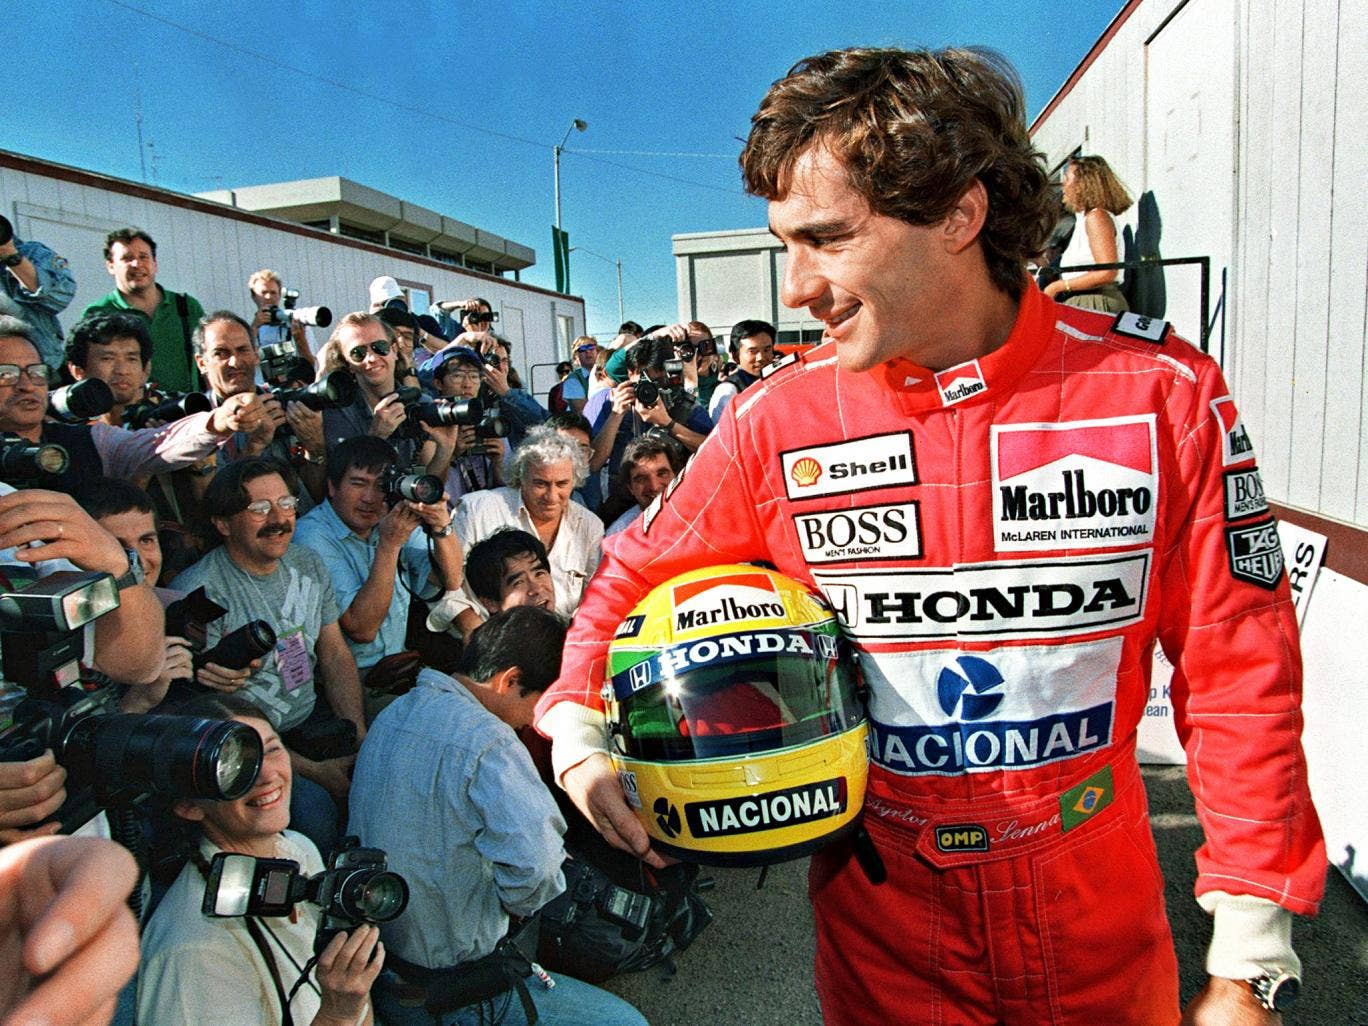 Ayrton Senna, the defending champion, poses for photographers in Phoenix on the eve of the 1991 F1 season